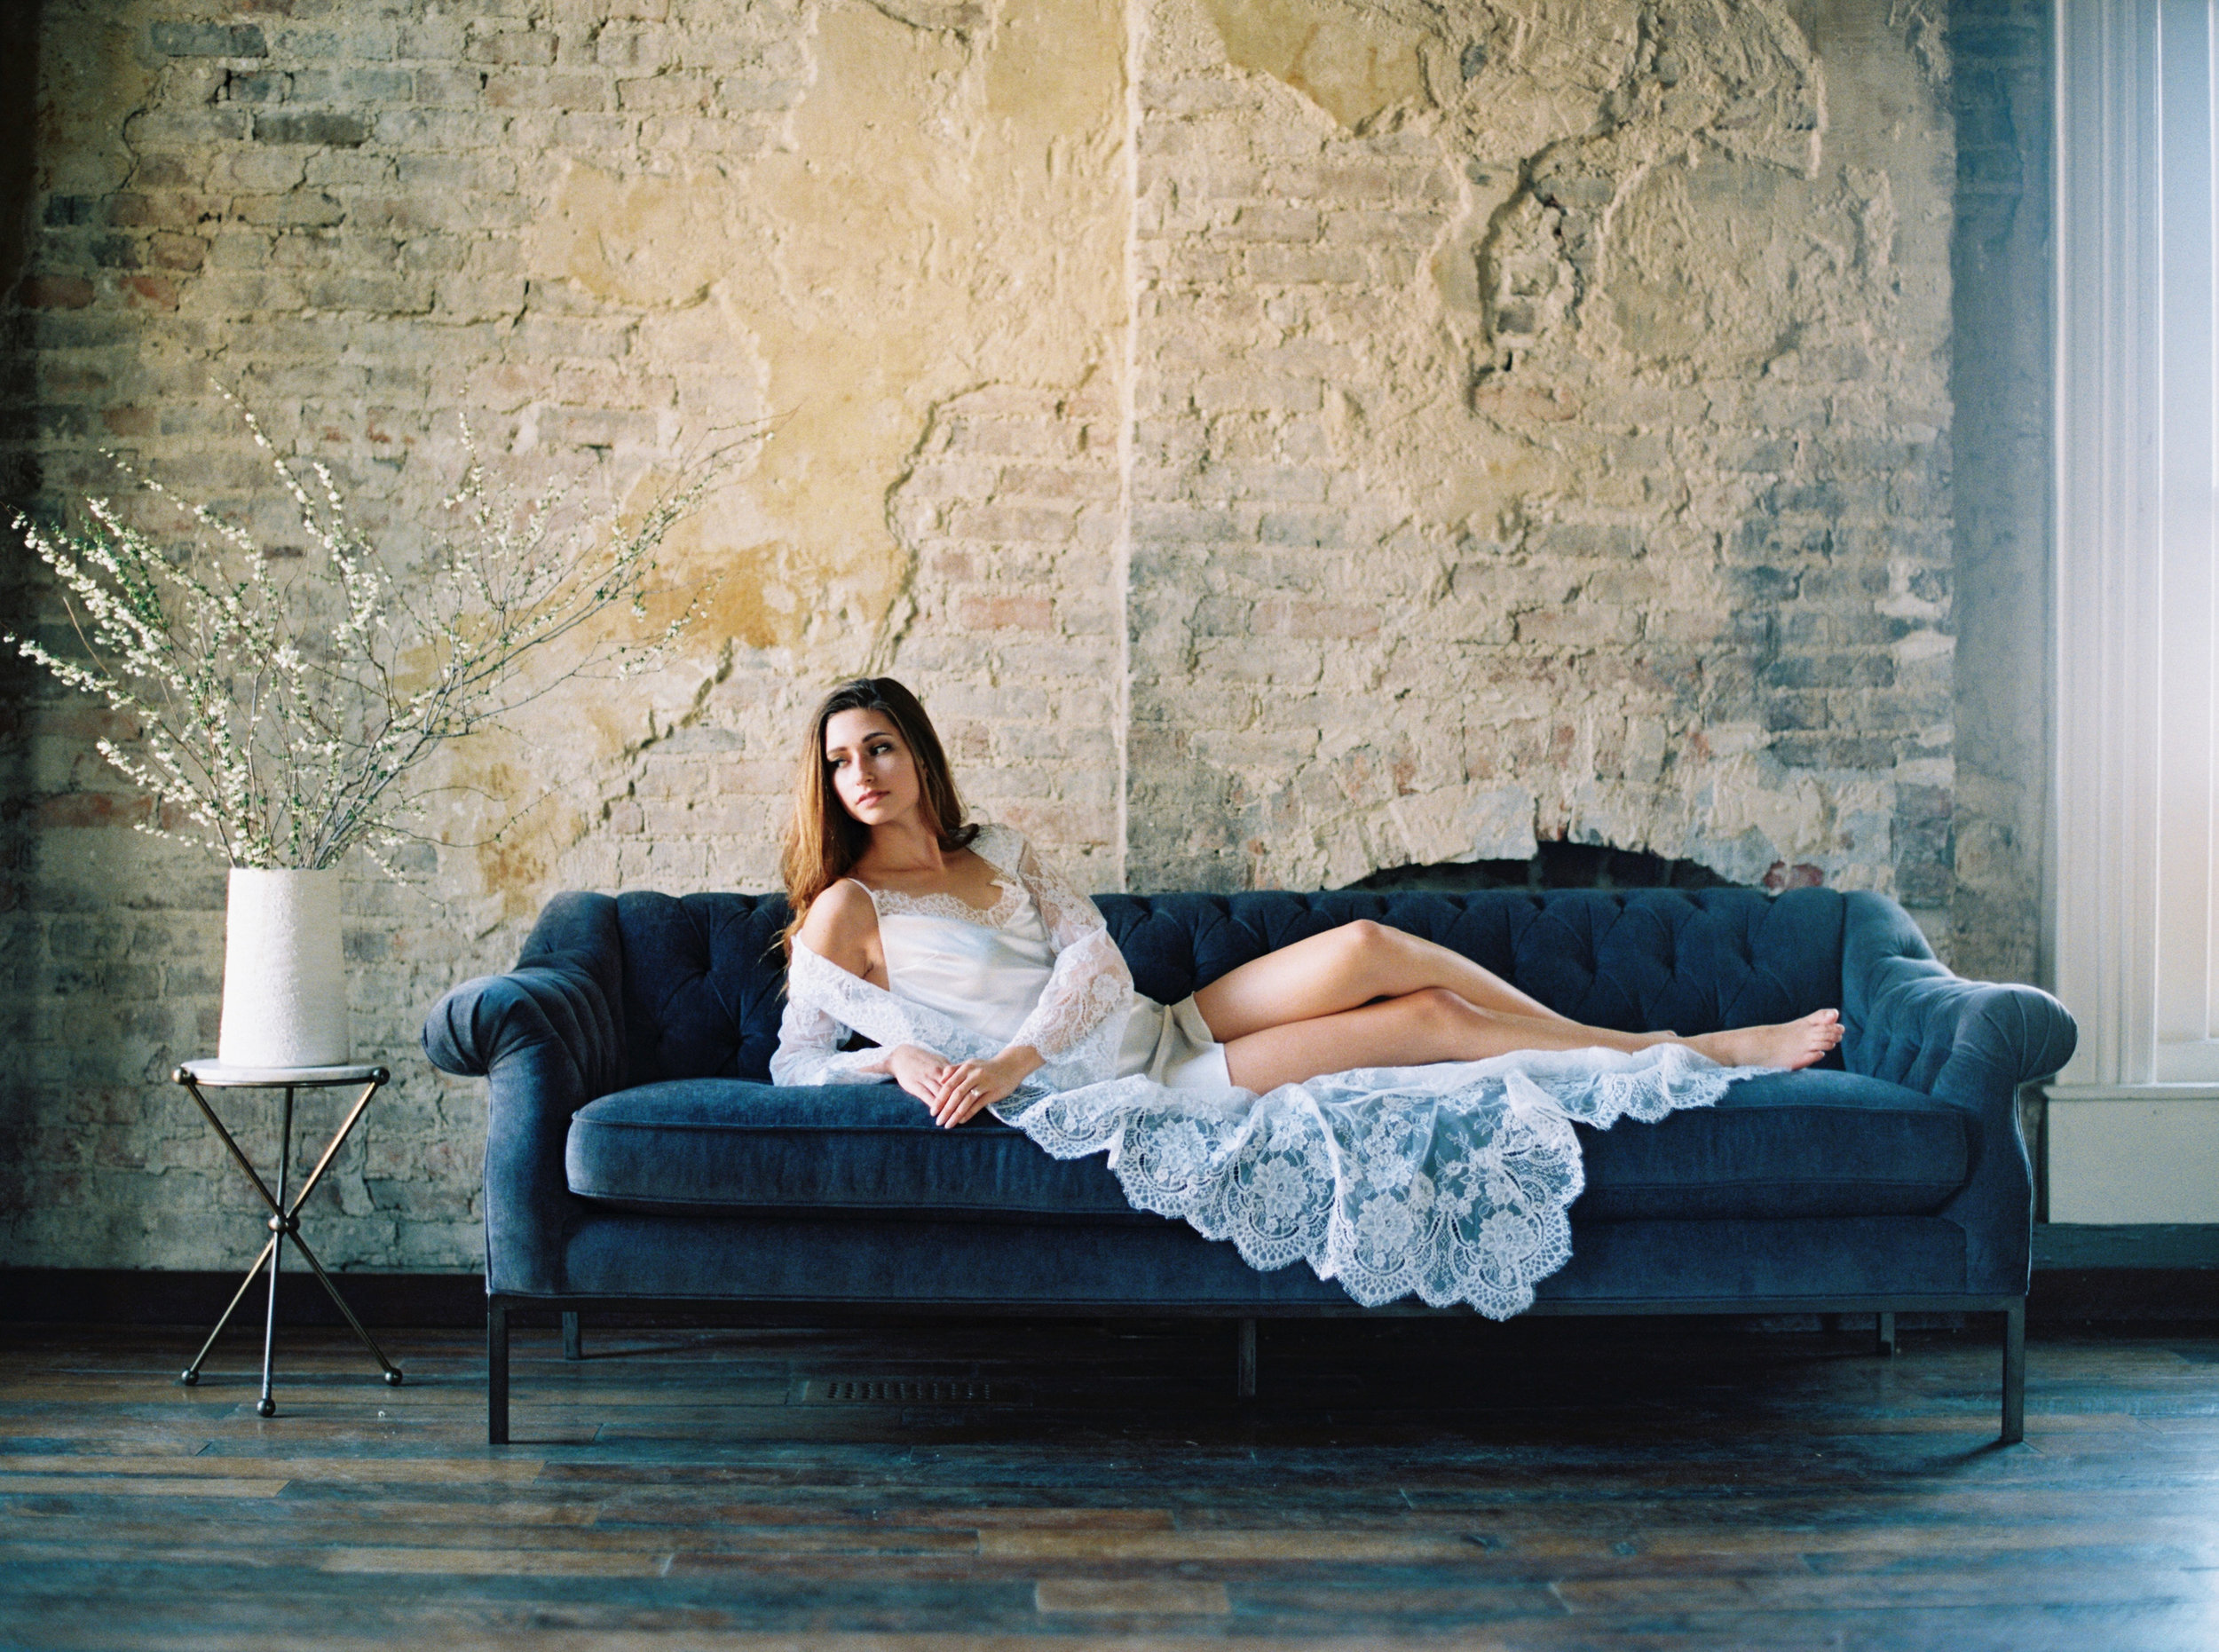 Cordell_Nashville_In_Bloom_Editorial_Boudoir_Abigail_Malone_Photography-120.jpg